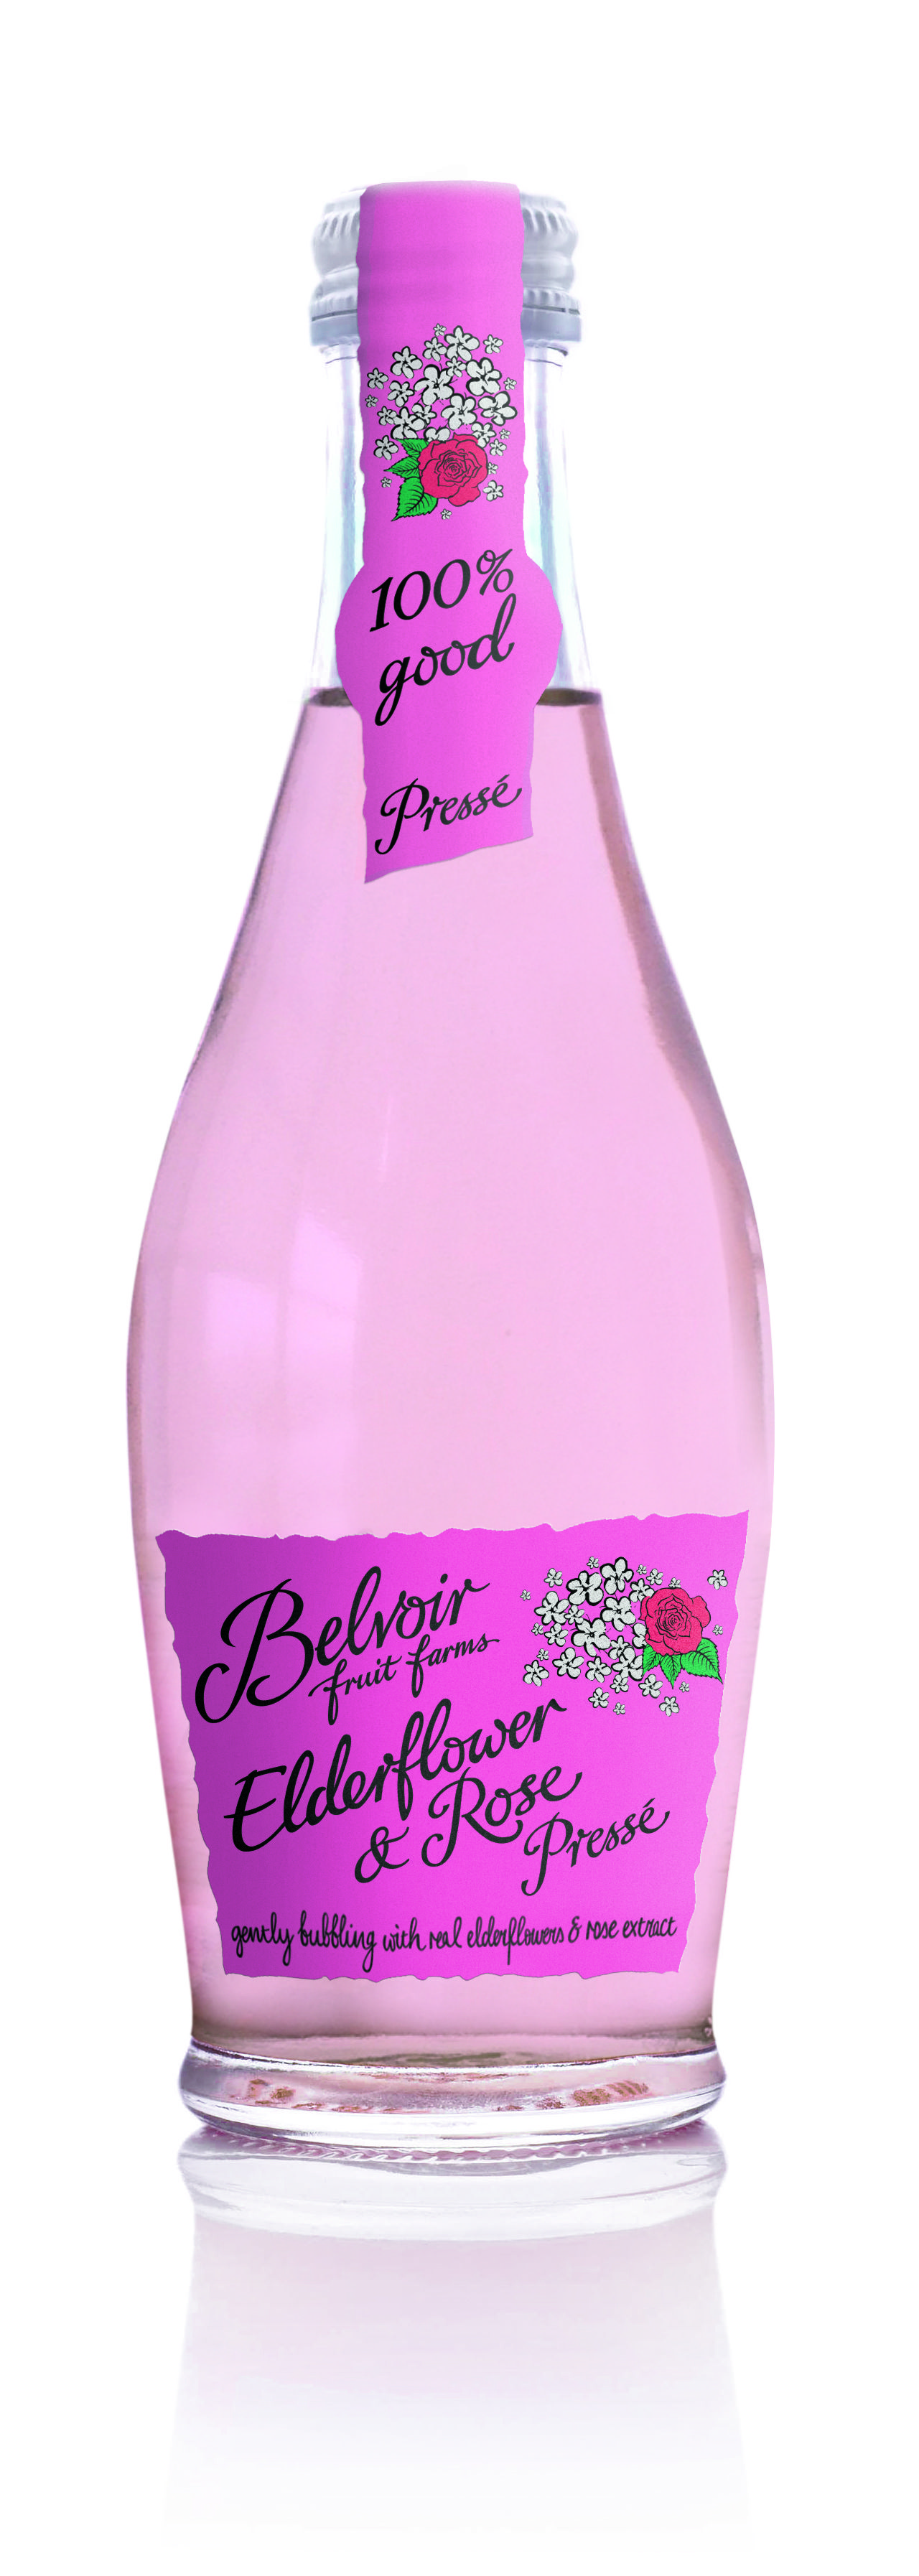 Elderflower  Rose Presse, 25cl. Perfect with wine for a refreshing summer drink